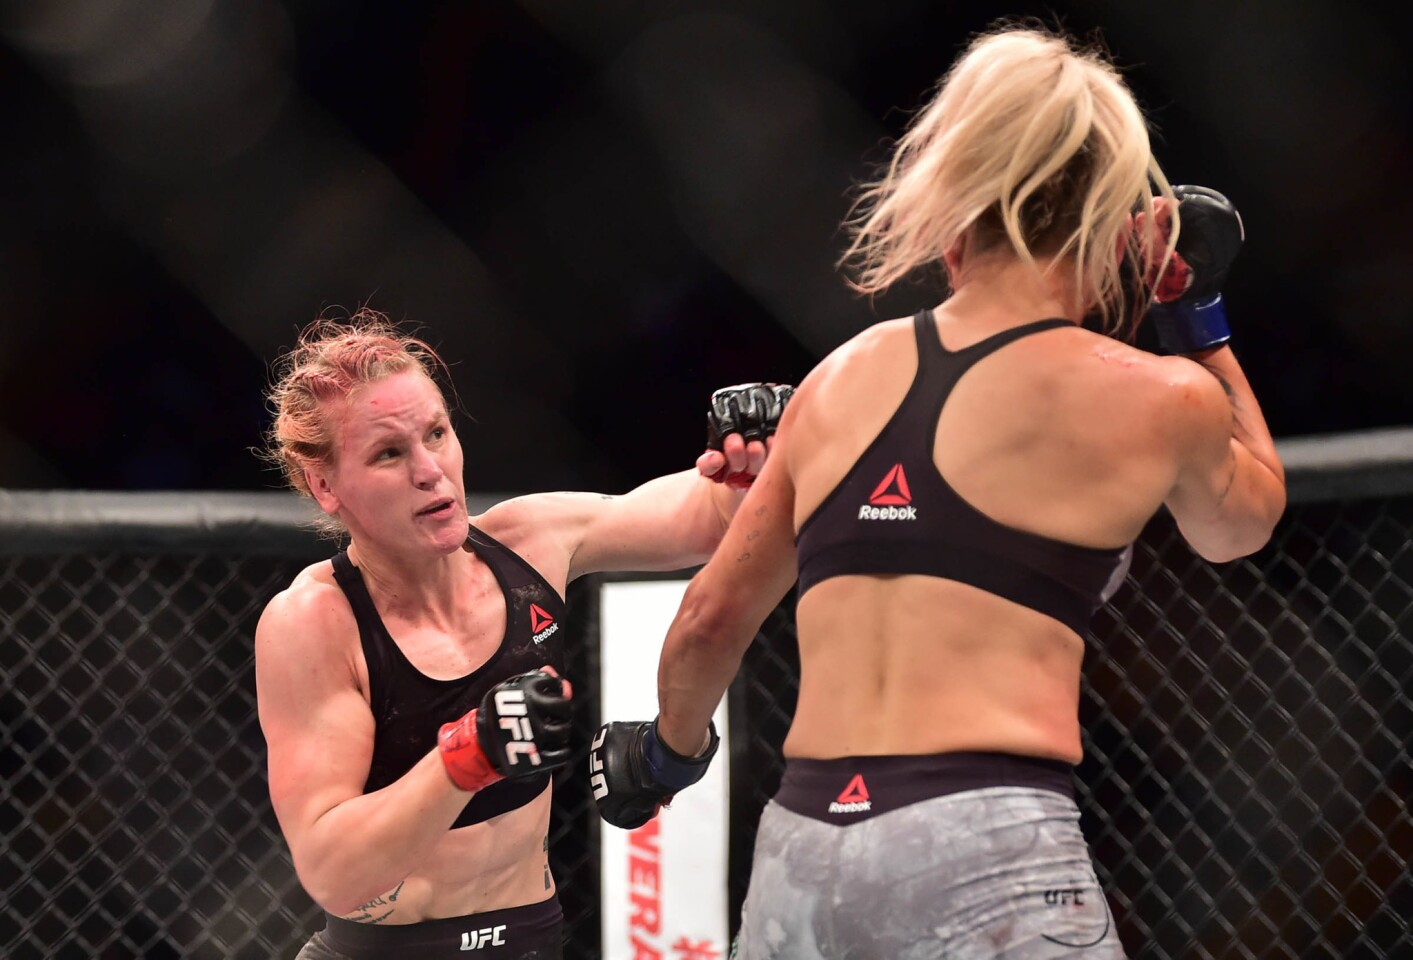 Feb 3, 2018; Belem, Brazil; Valentina Shevchenko (red gloves) fights Priscila Cachoeira (blue gloves) during UFC Fight Night at Mangueirinho Arena. Mandatory Credit: Jason Silva-USA TODAY Sports ** Usable by SD and OS ONLY **